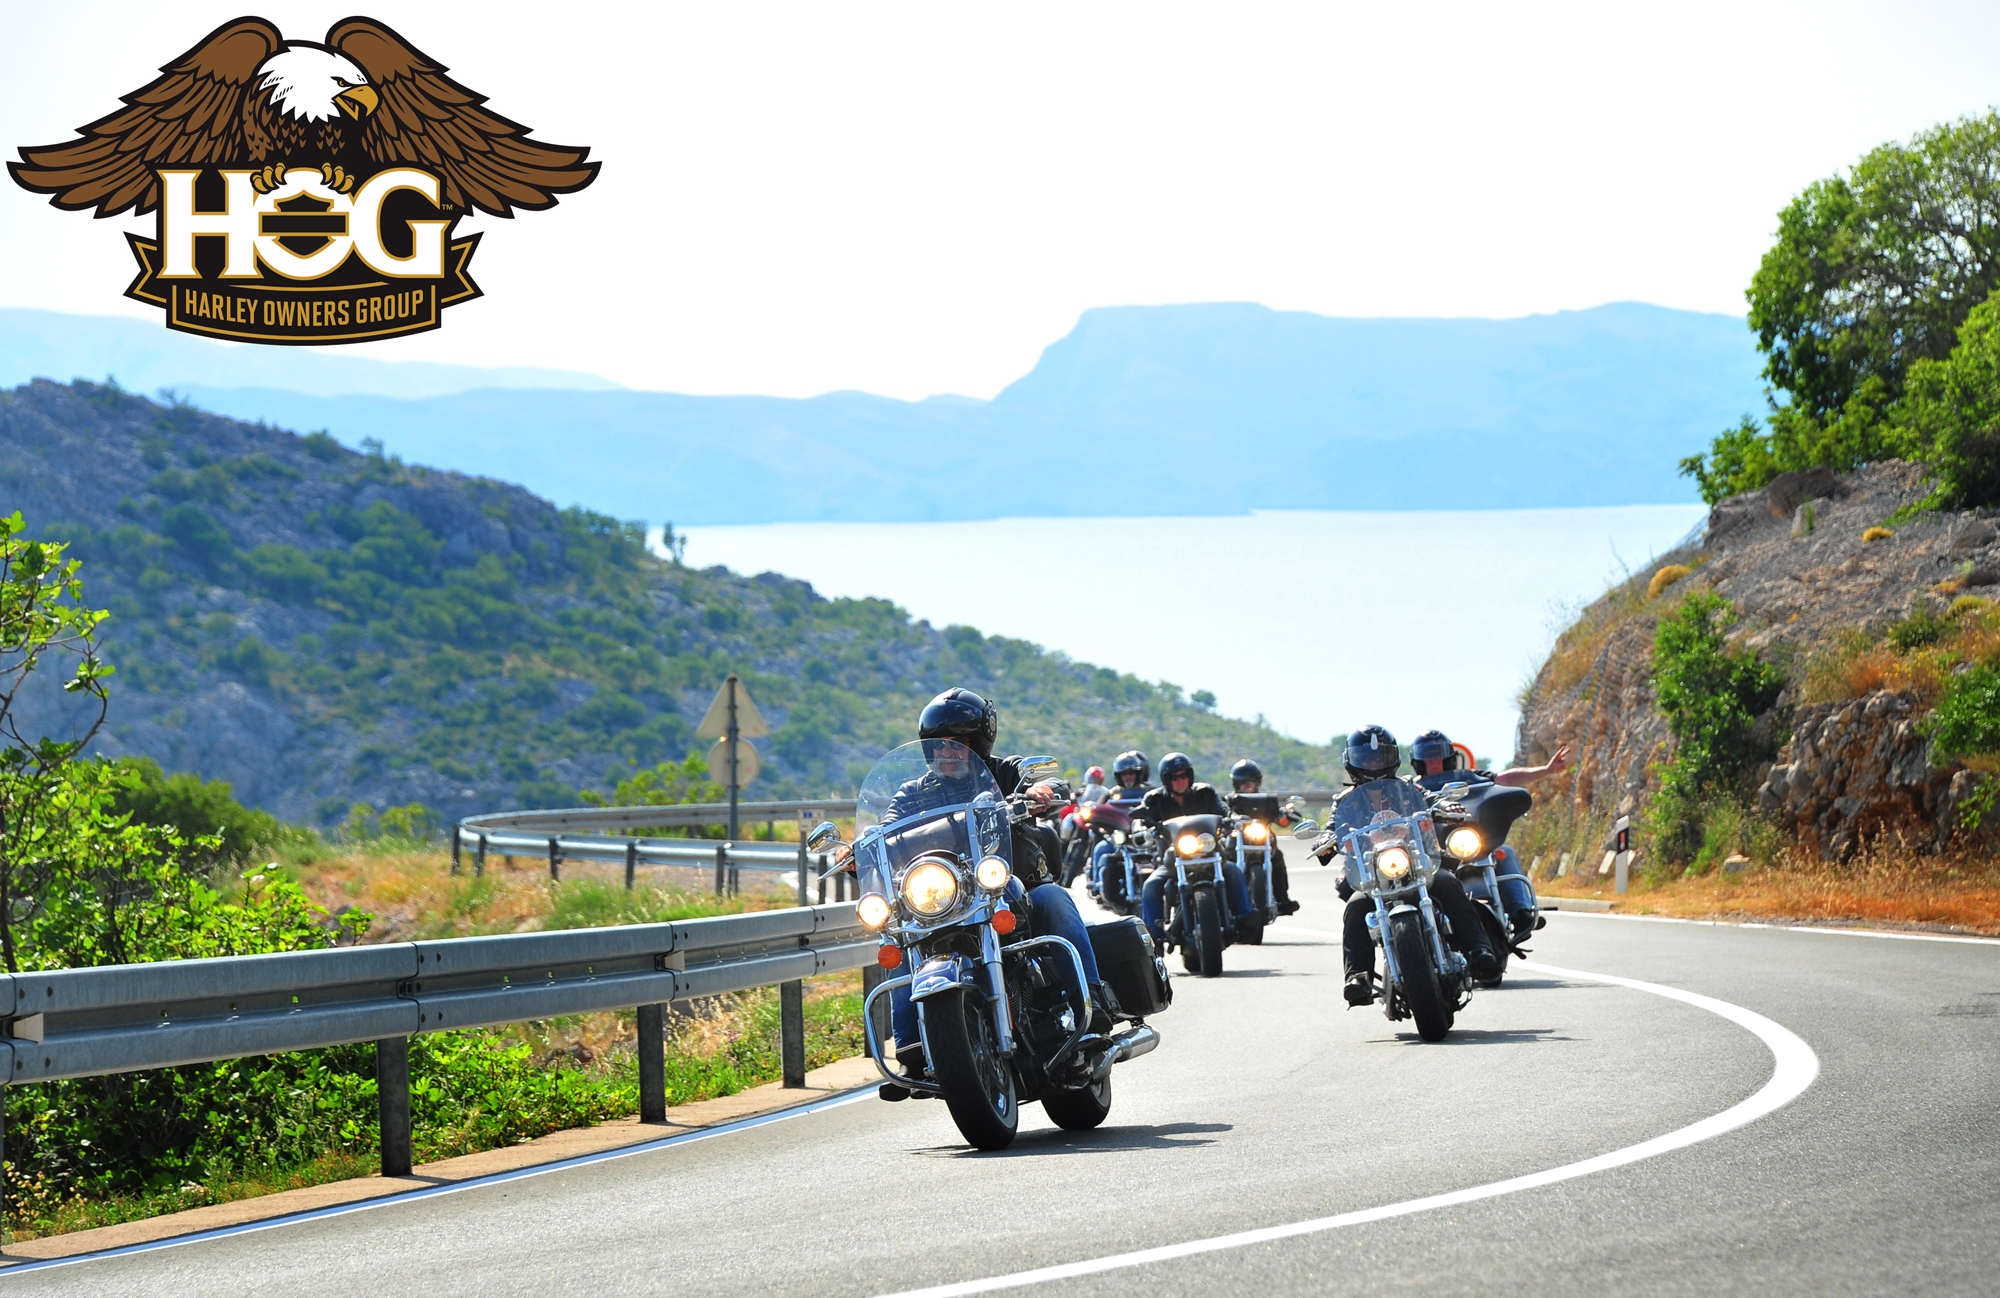 European H.O.G.® Rally 2015 in Andalusia